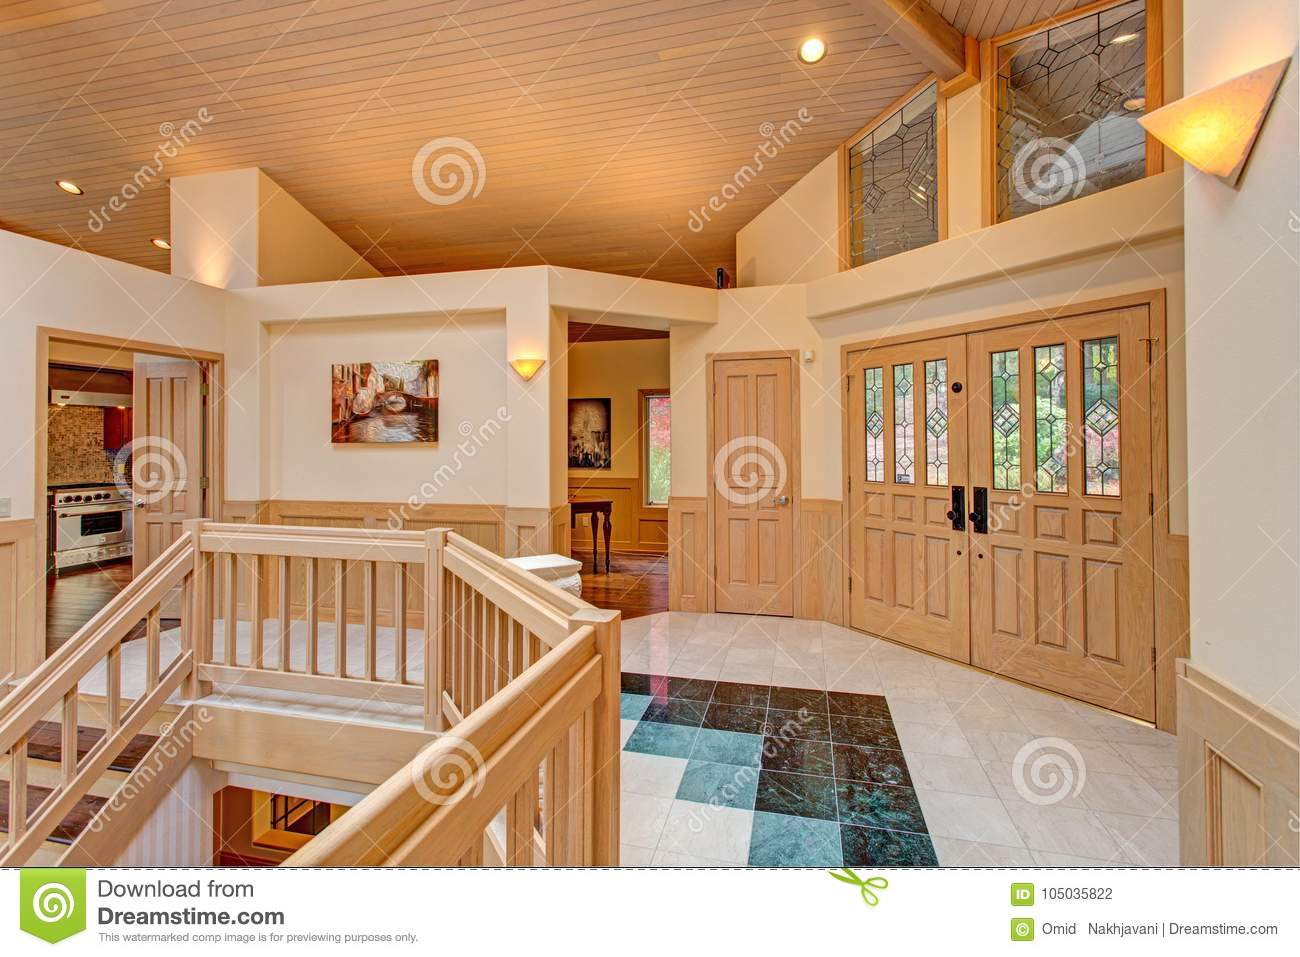 Chic Grand Entrance Foyer Design With Double Sided Staircase Stock Photo Image Of Indoors Floor 105035822